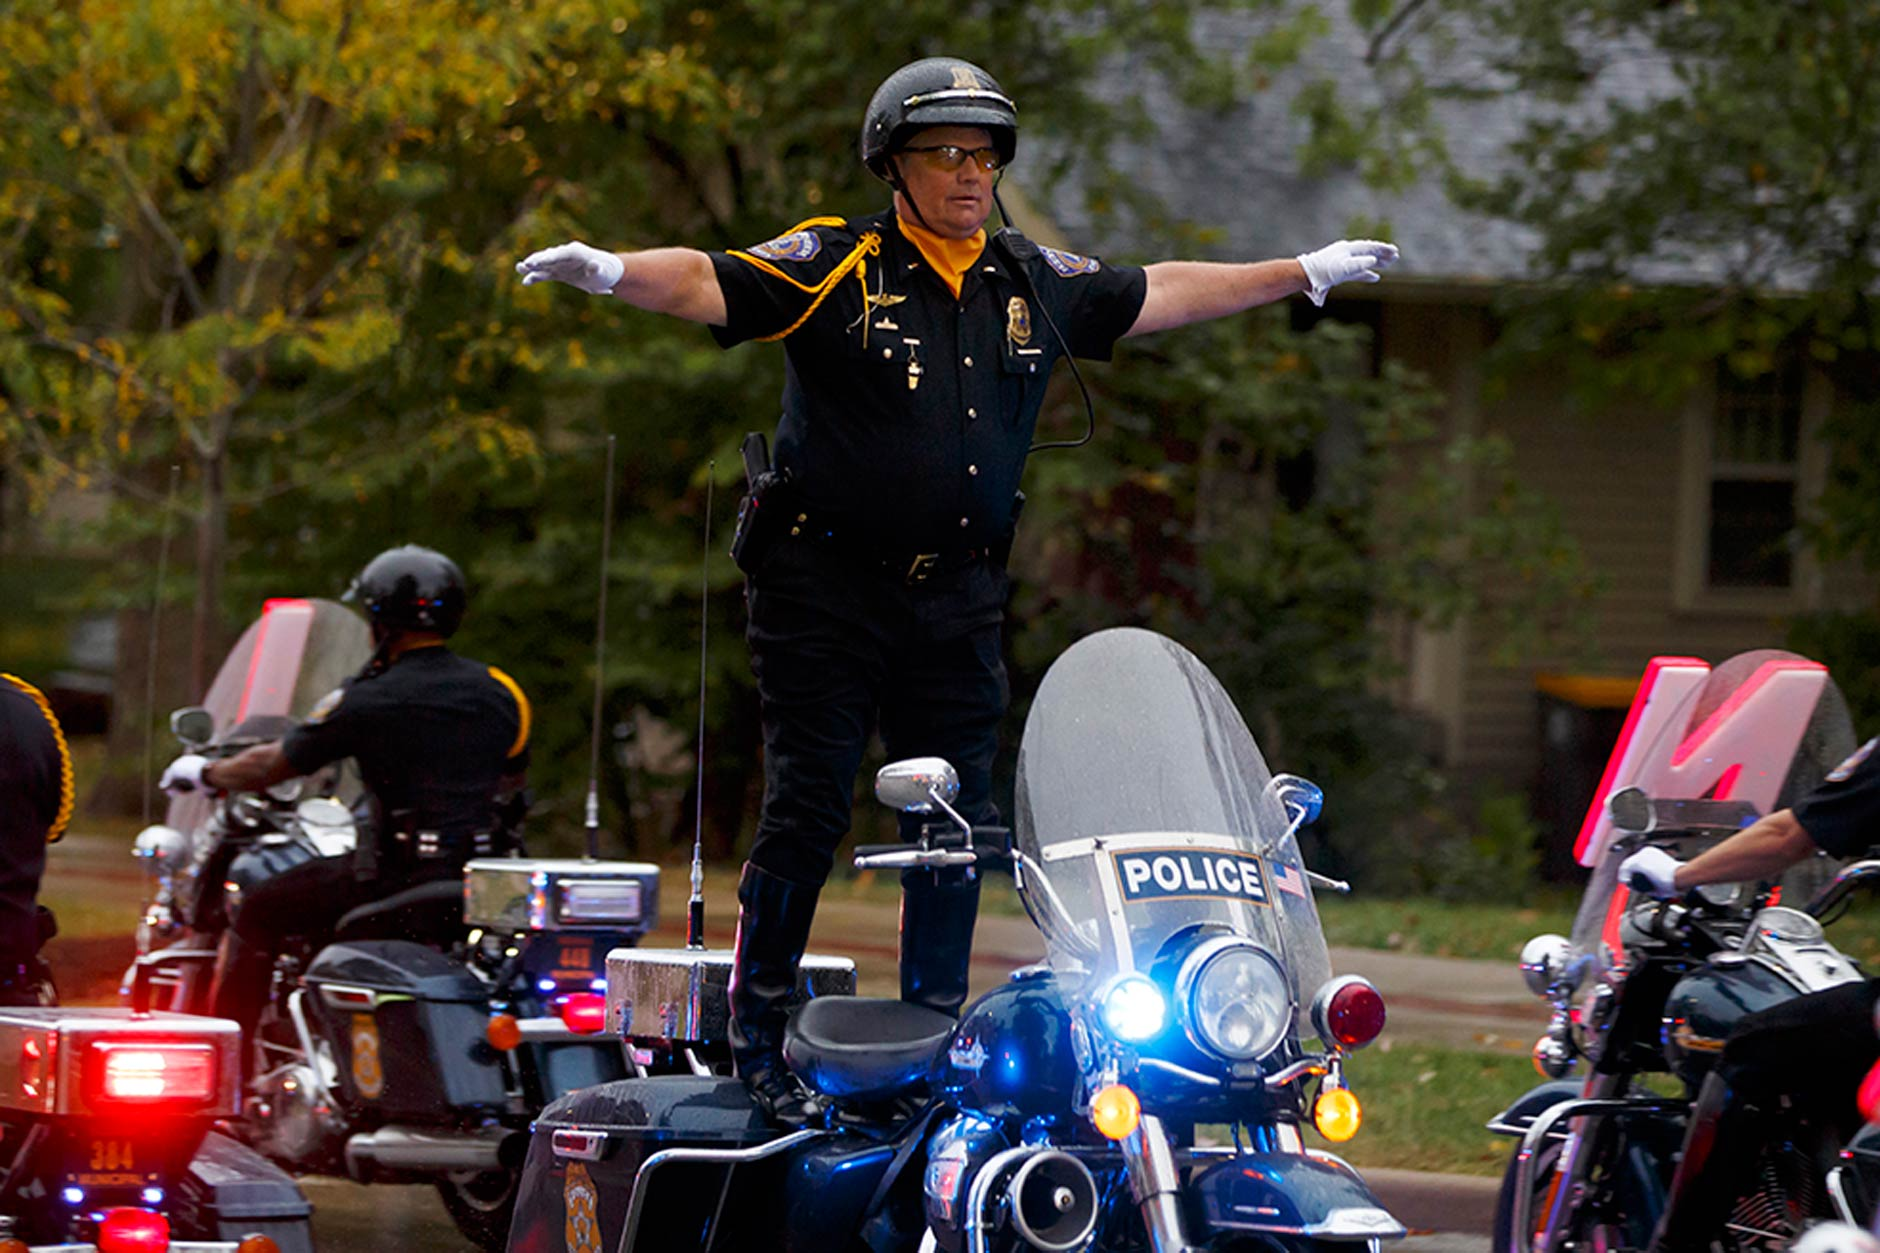 A member of the Indianapolis Metropolitan Police Motorcycle Drill Team performs during the Indiana University Bloomington Homecoming Parade on Friday, Oct. 11, 2019. (James Brosher/Indiana University)